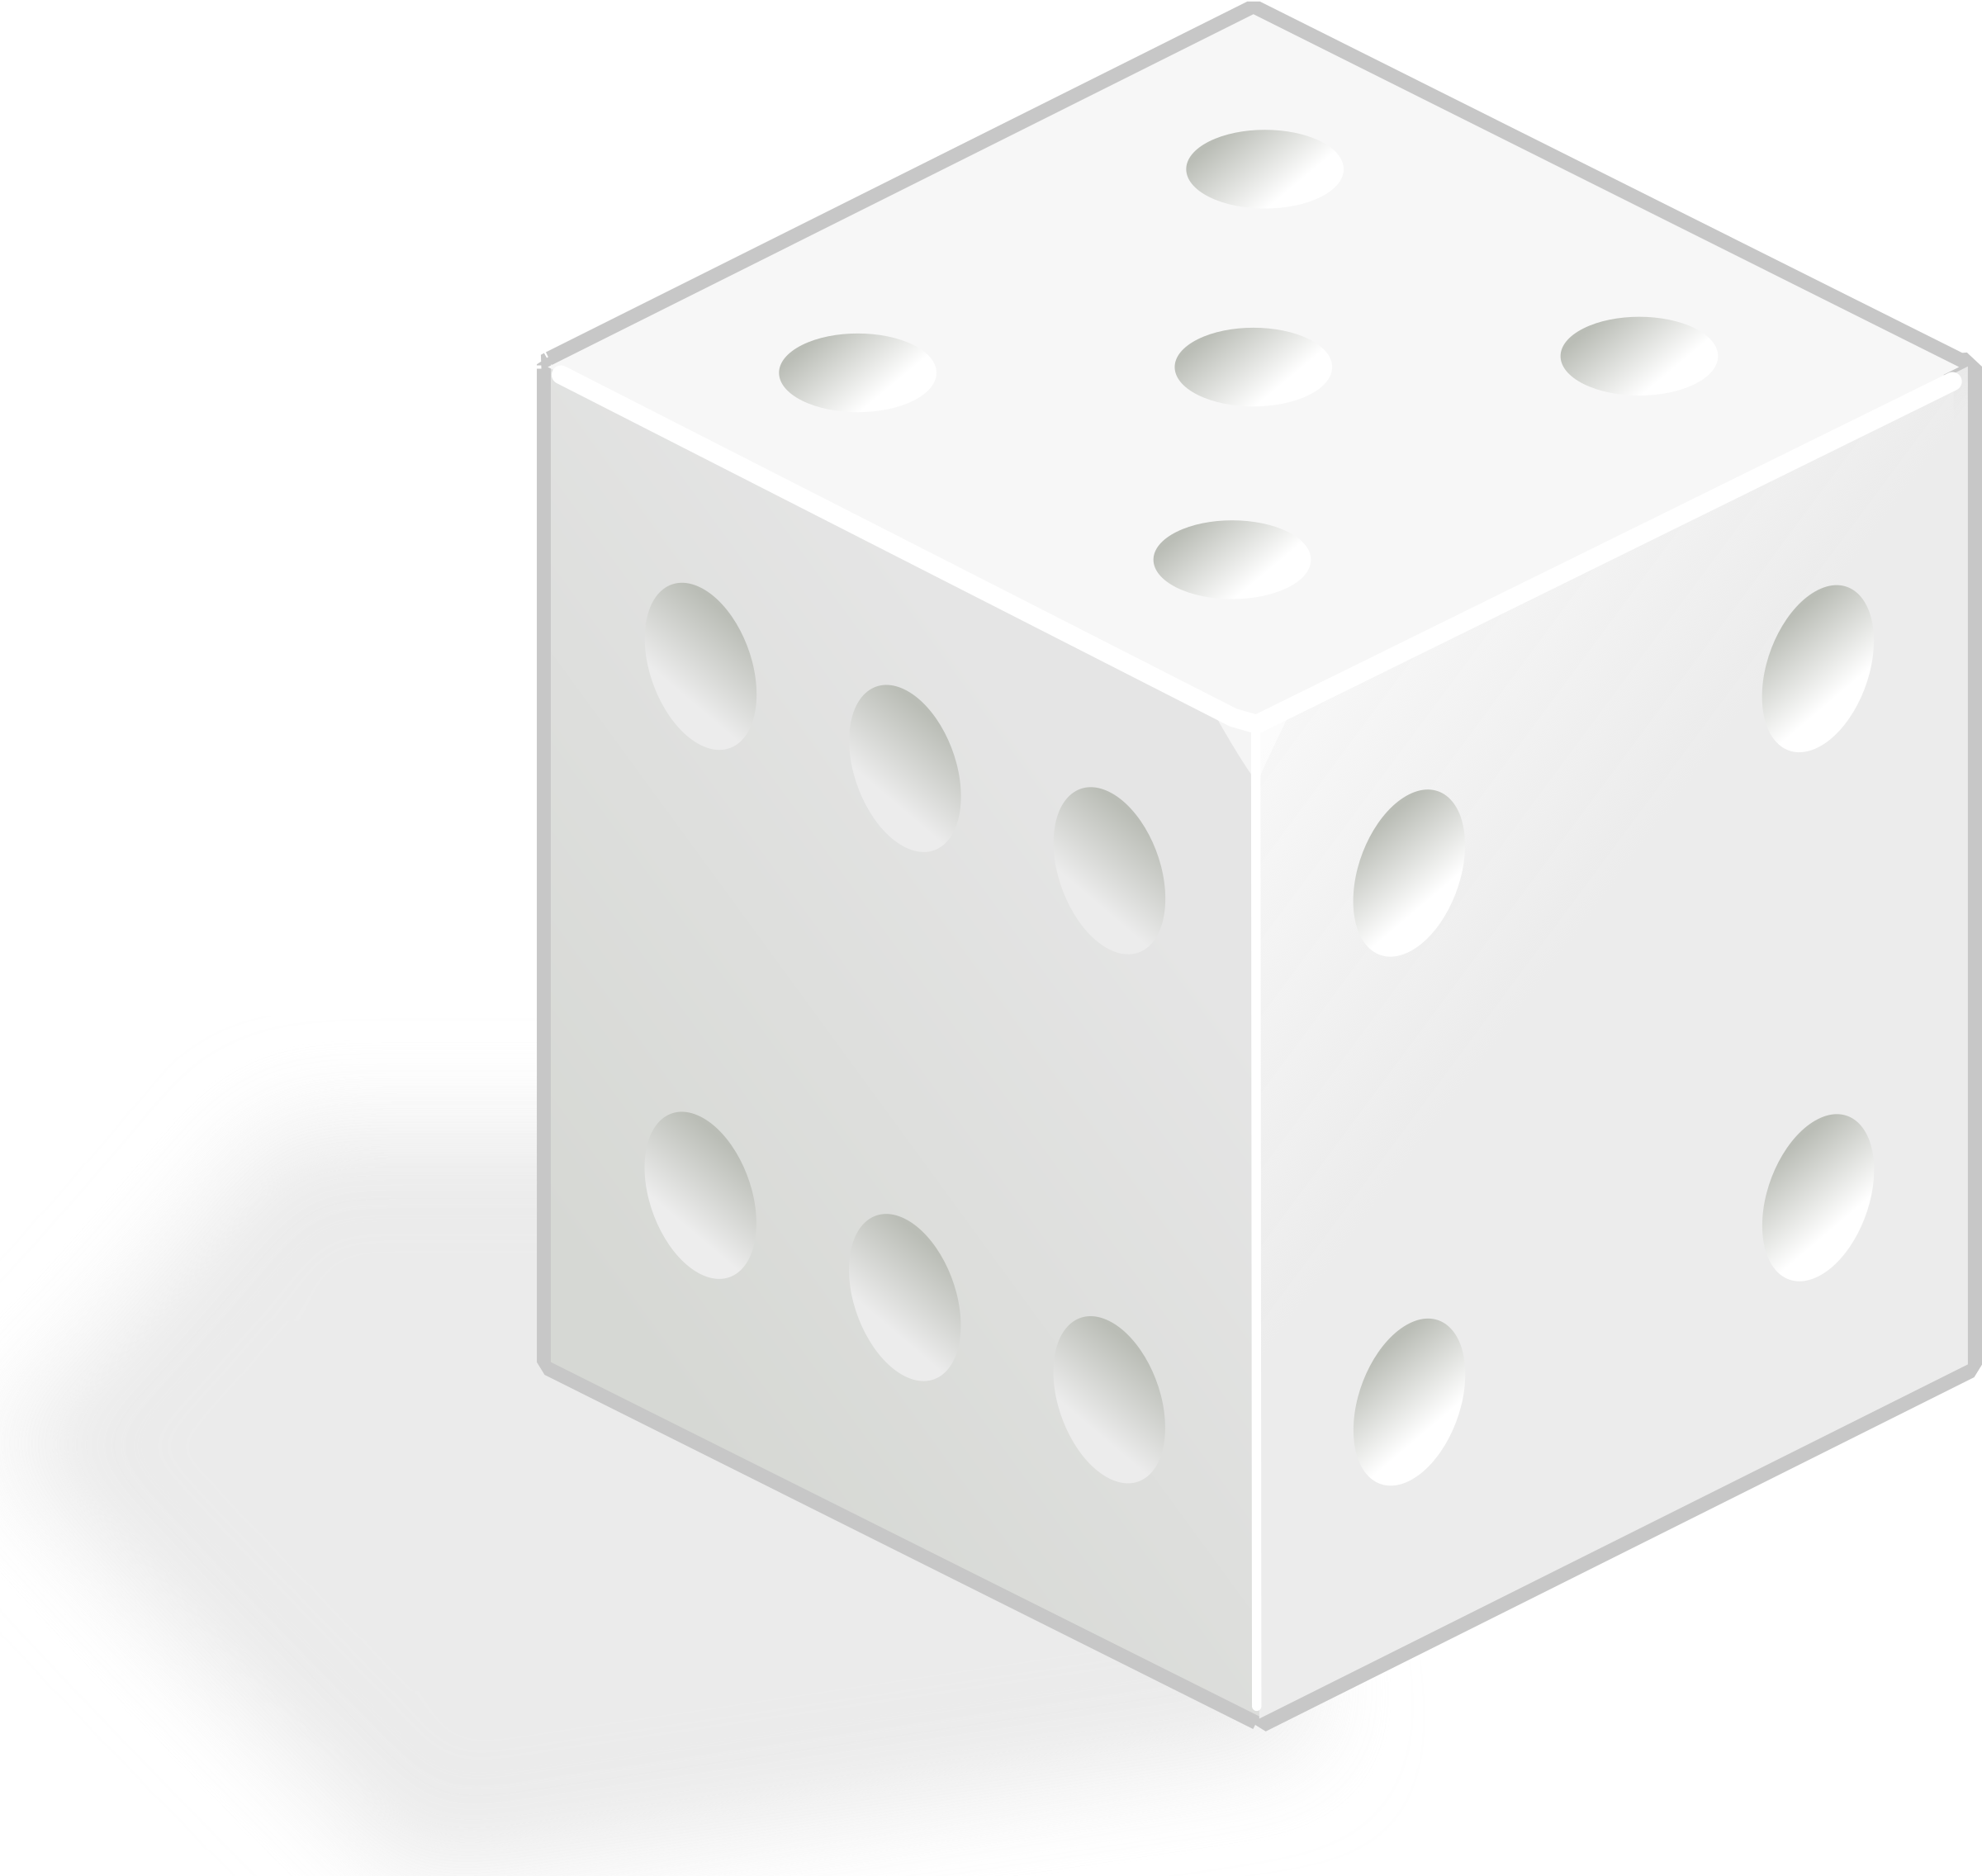 white dice by rg1024